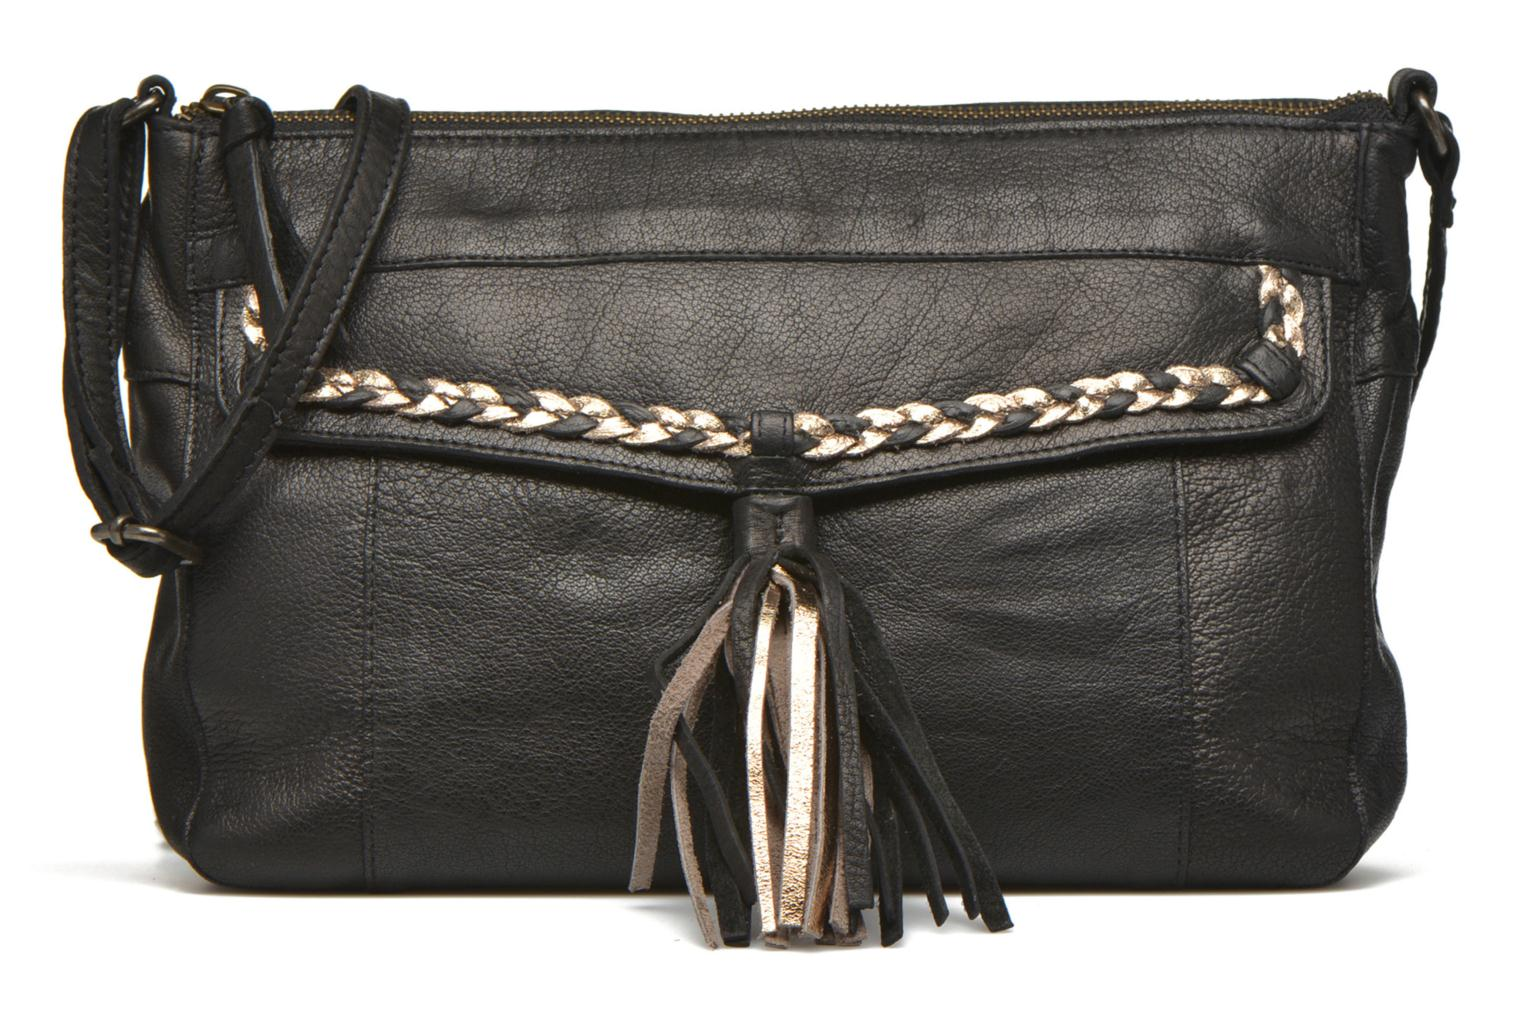 POFO Leather Crossbody bag